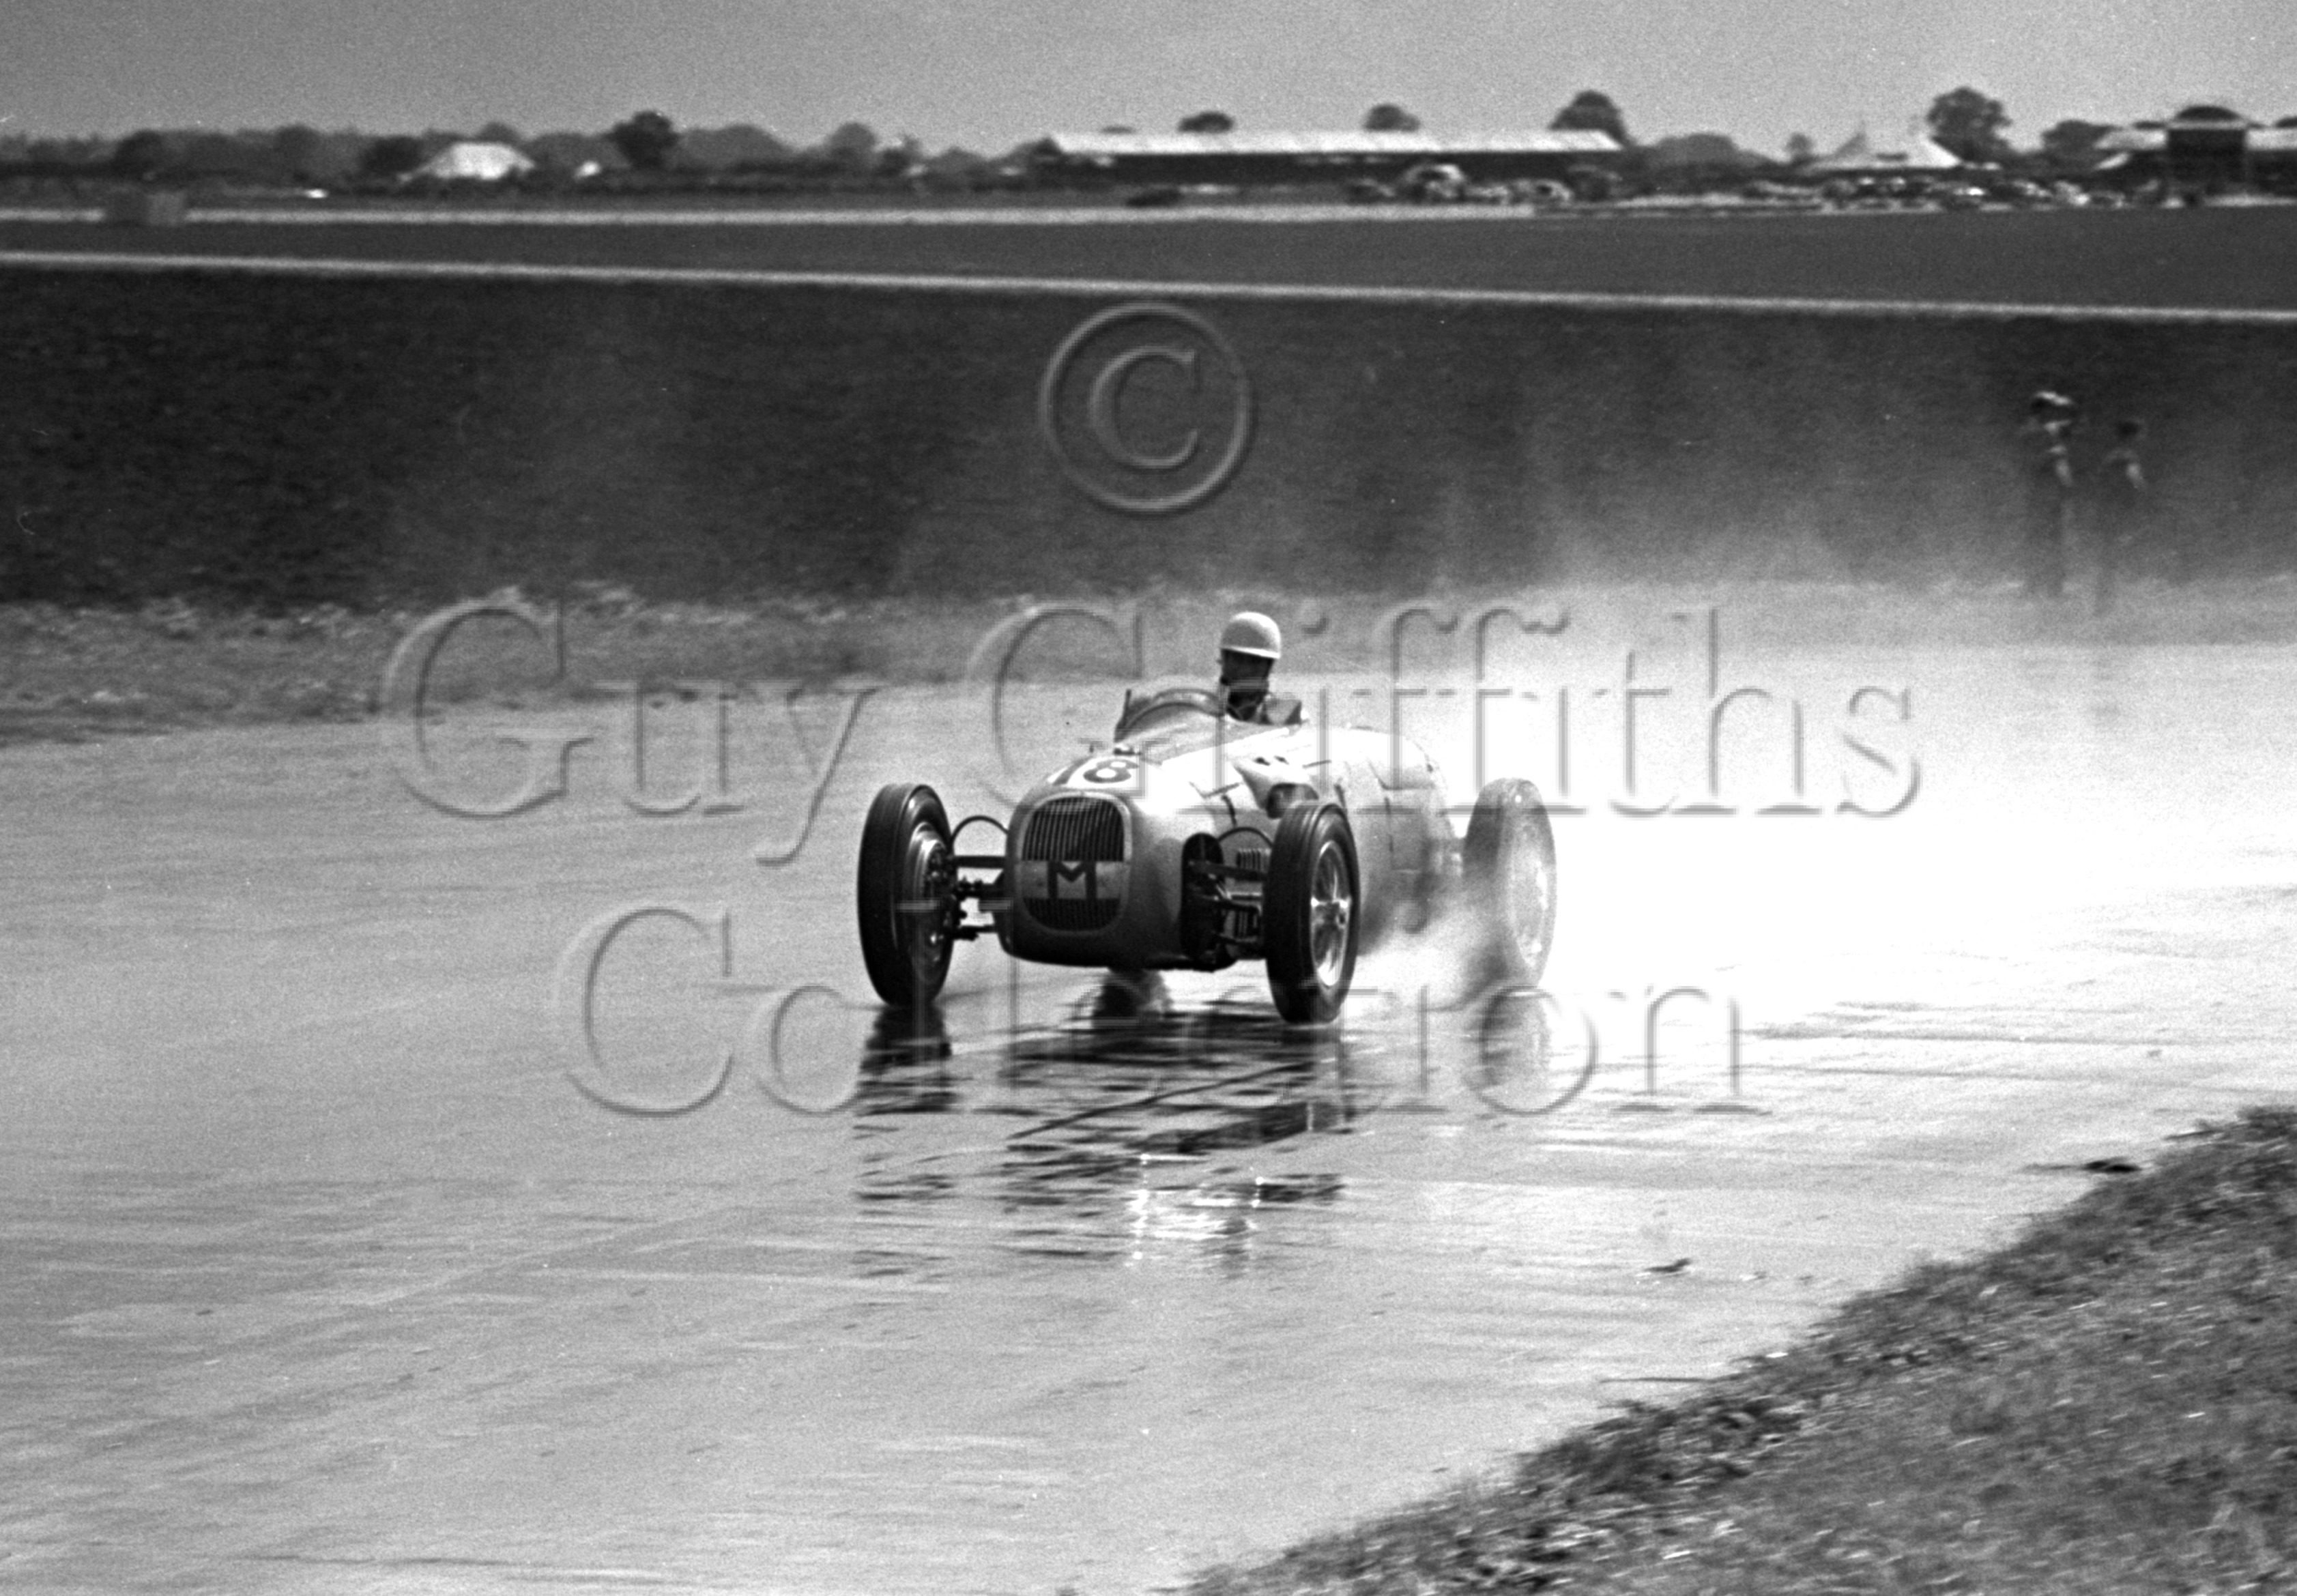 35-954–S-Moss–HWM–Silverstone—-26-08-1950.jpg - The Guy Griffiths Collection